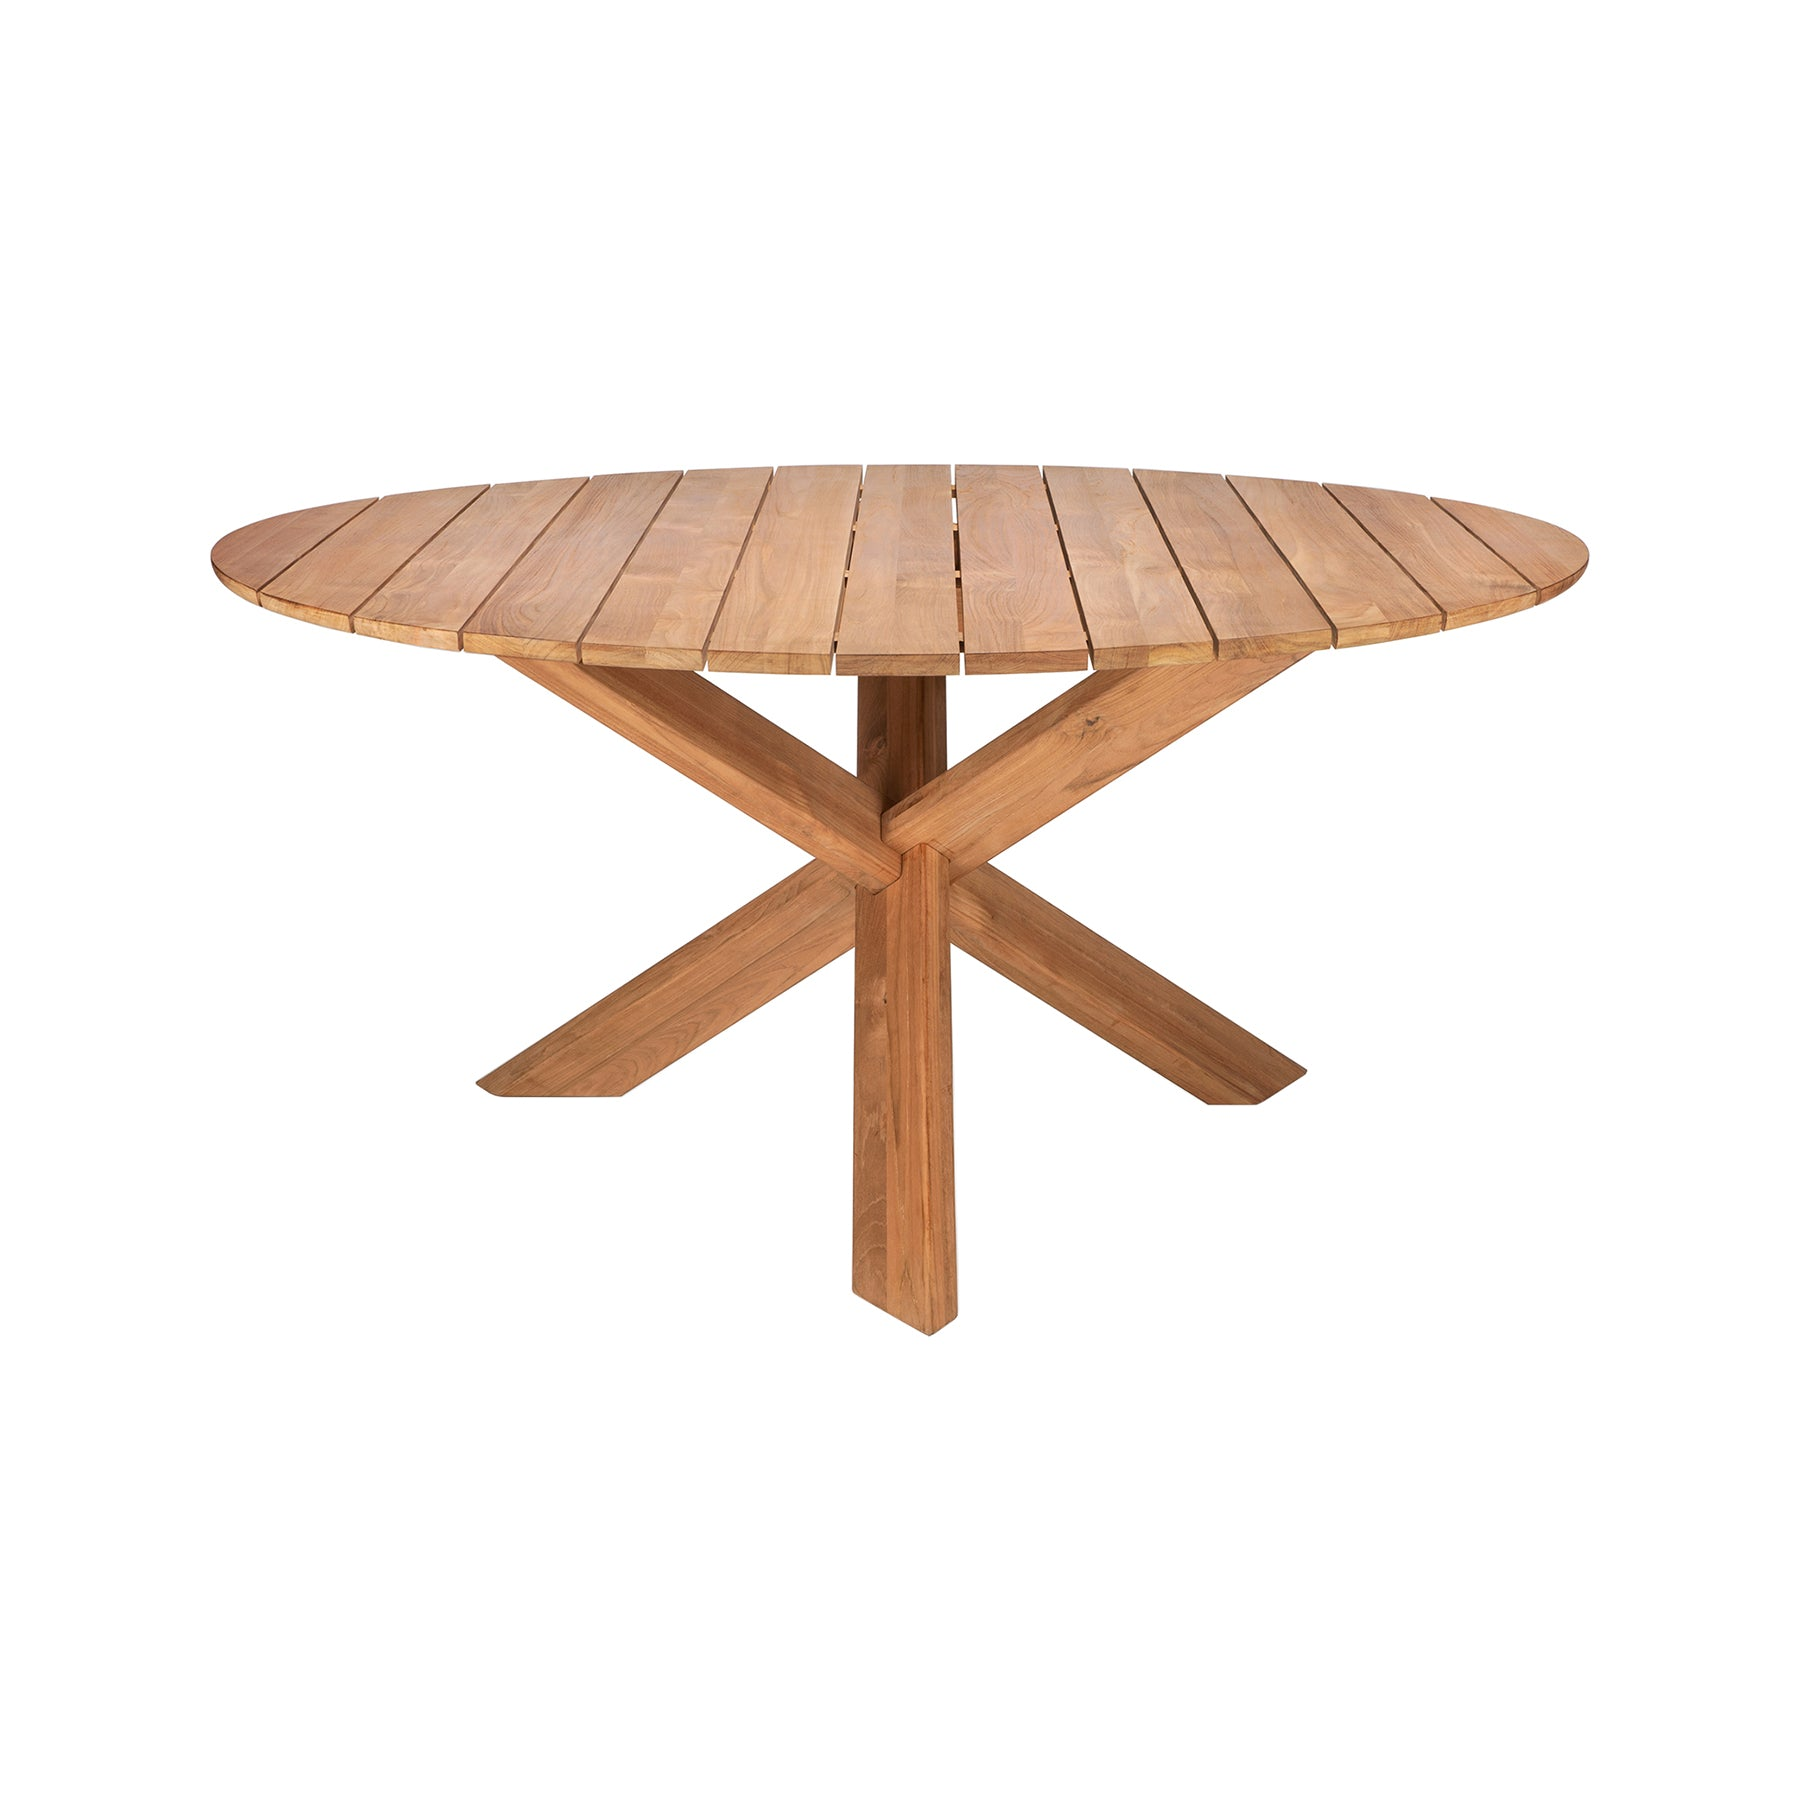 Teak Circle Outdoor Dining Table Ld Shoppe